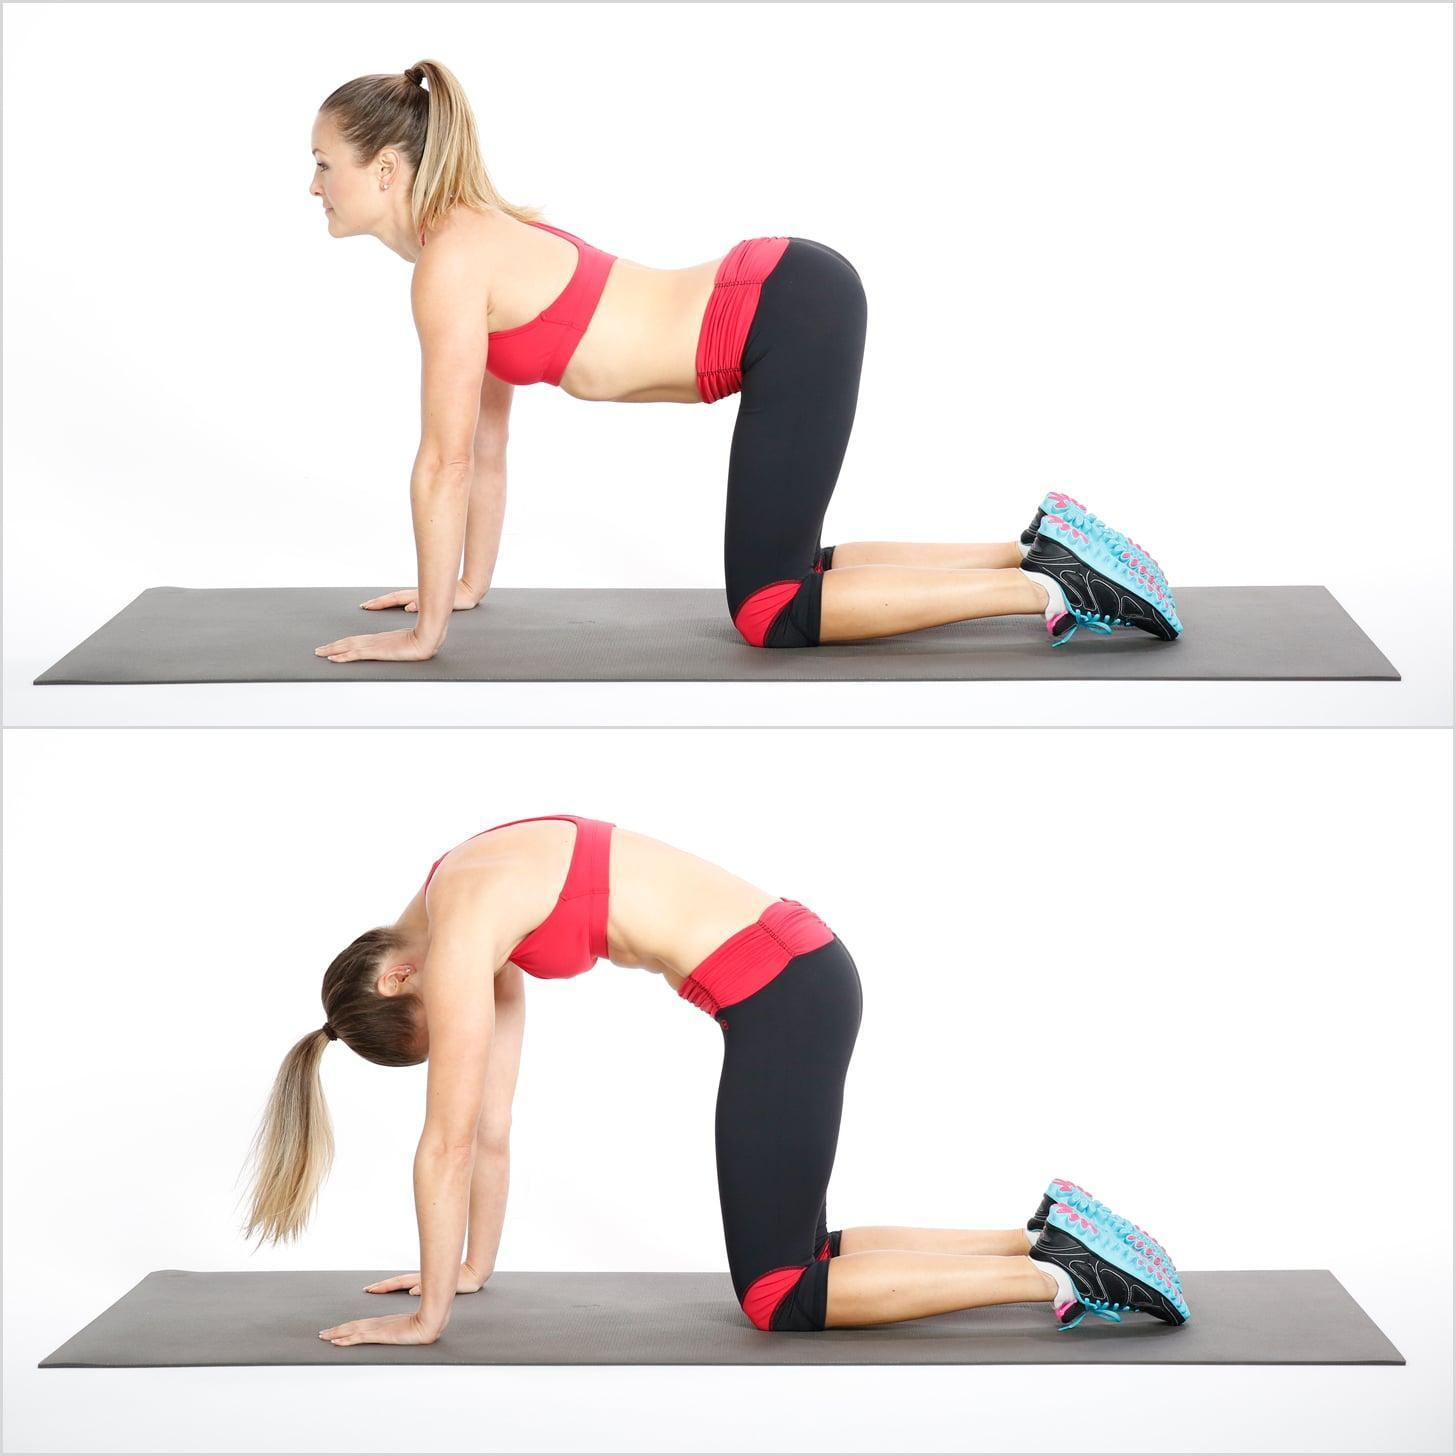 Relieve Back Pain With Cat Cow Stretch | POPSUGAR Fitness